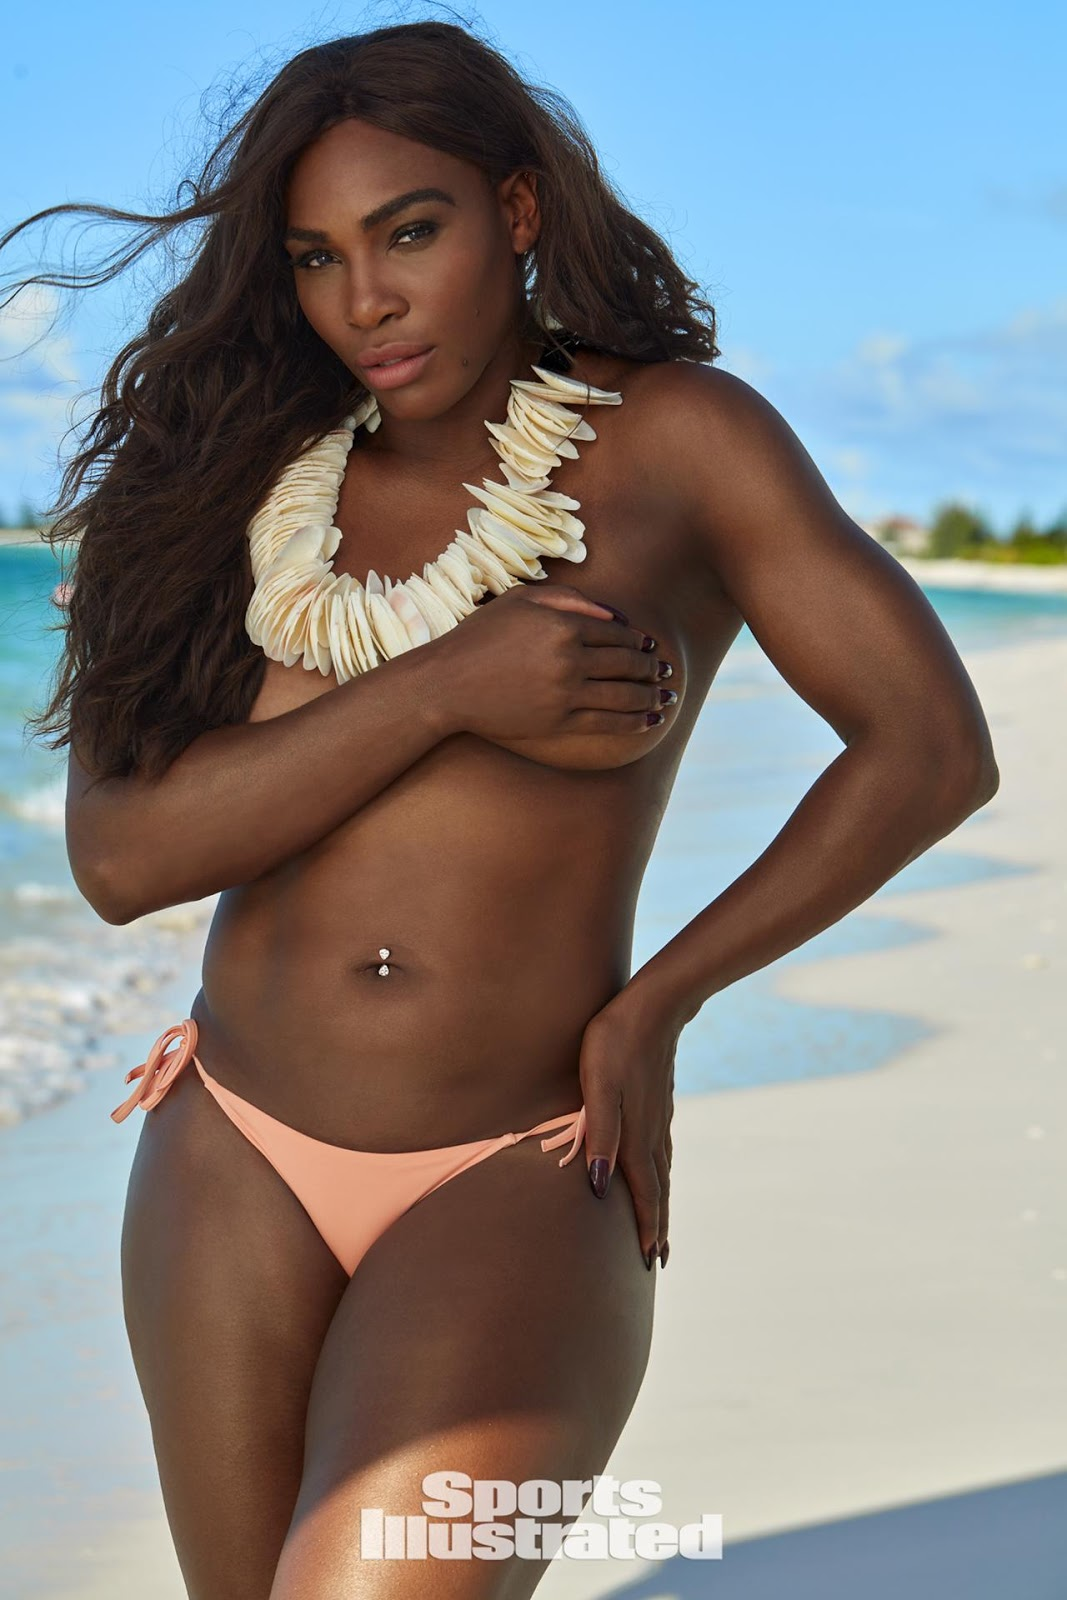 Serena Williams poses topless for Sports Illustrated Swimsuit Issue 2017